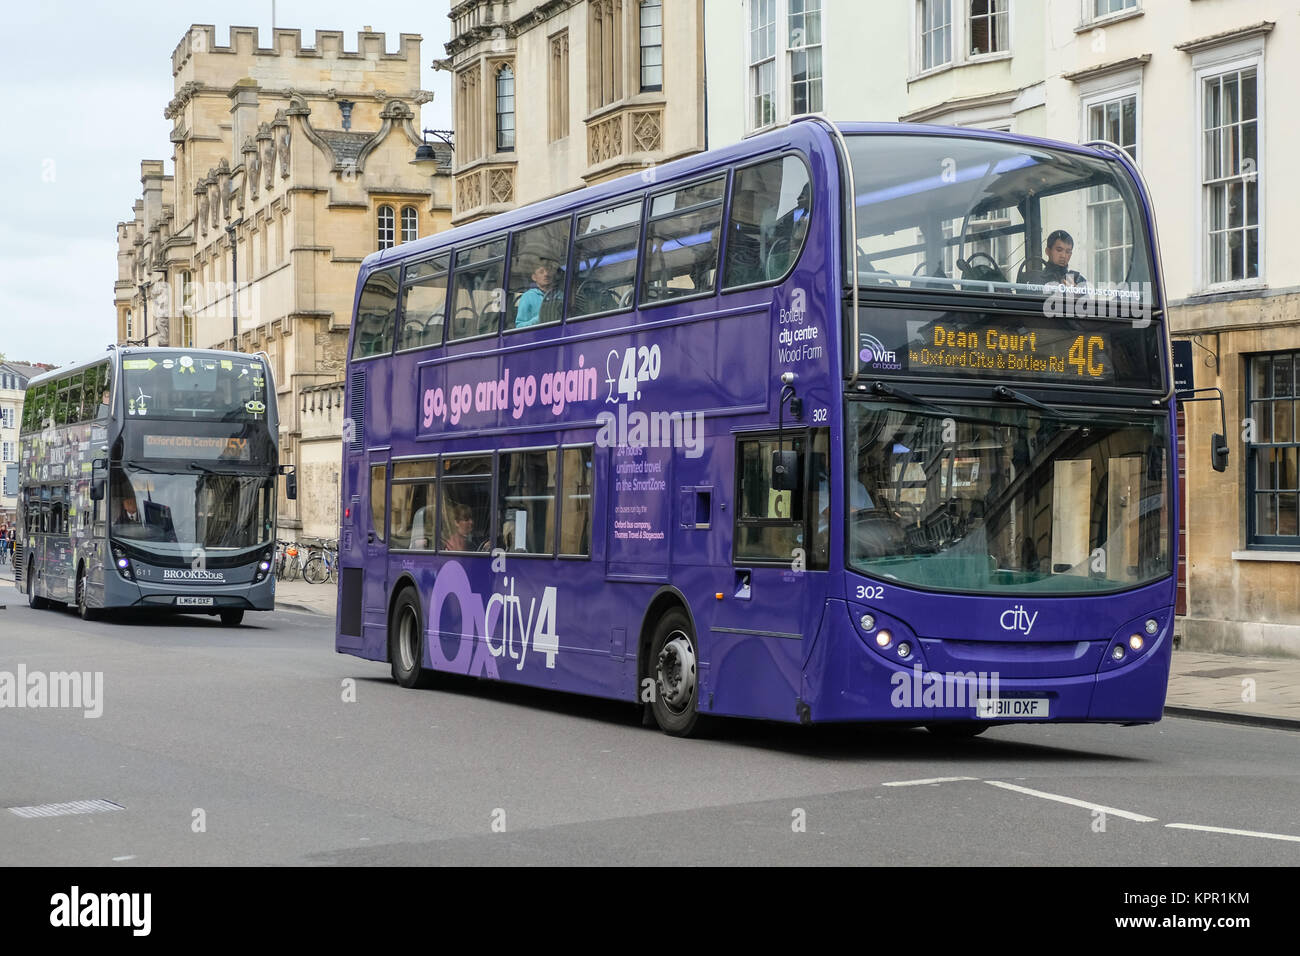 Double Decker Bus with Free 4G Wifi on the High Street Oxford, Oxfordshire, England - Stock Image